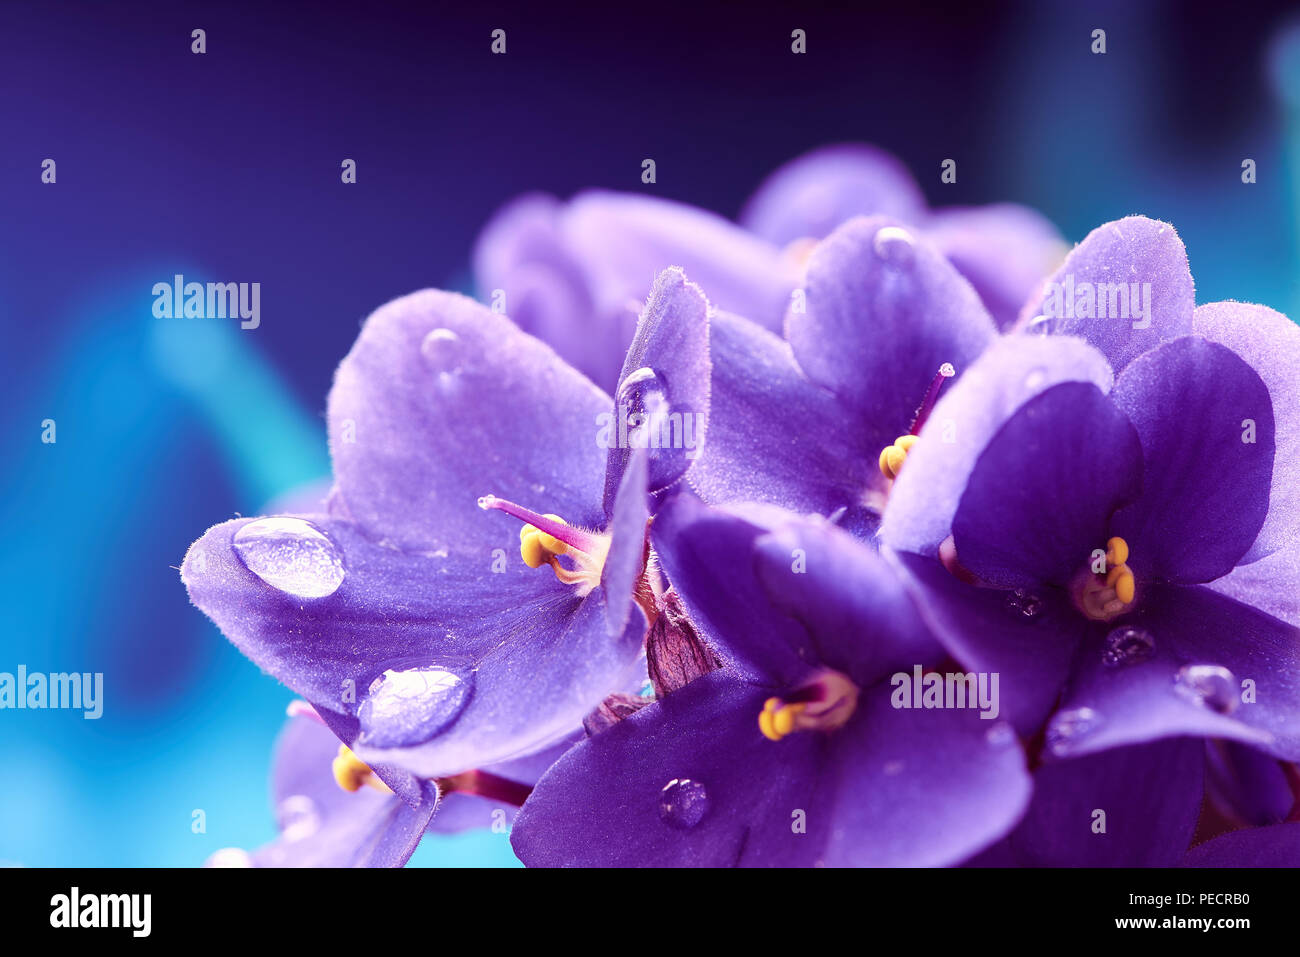 Violet Flower Wallpaper High Resolution Stock Photography And Images Alamy